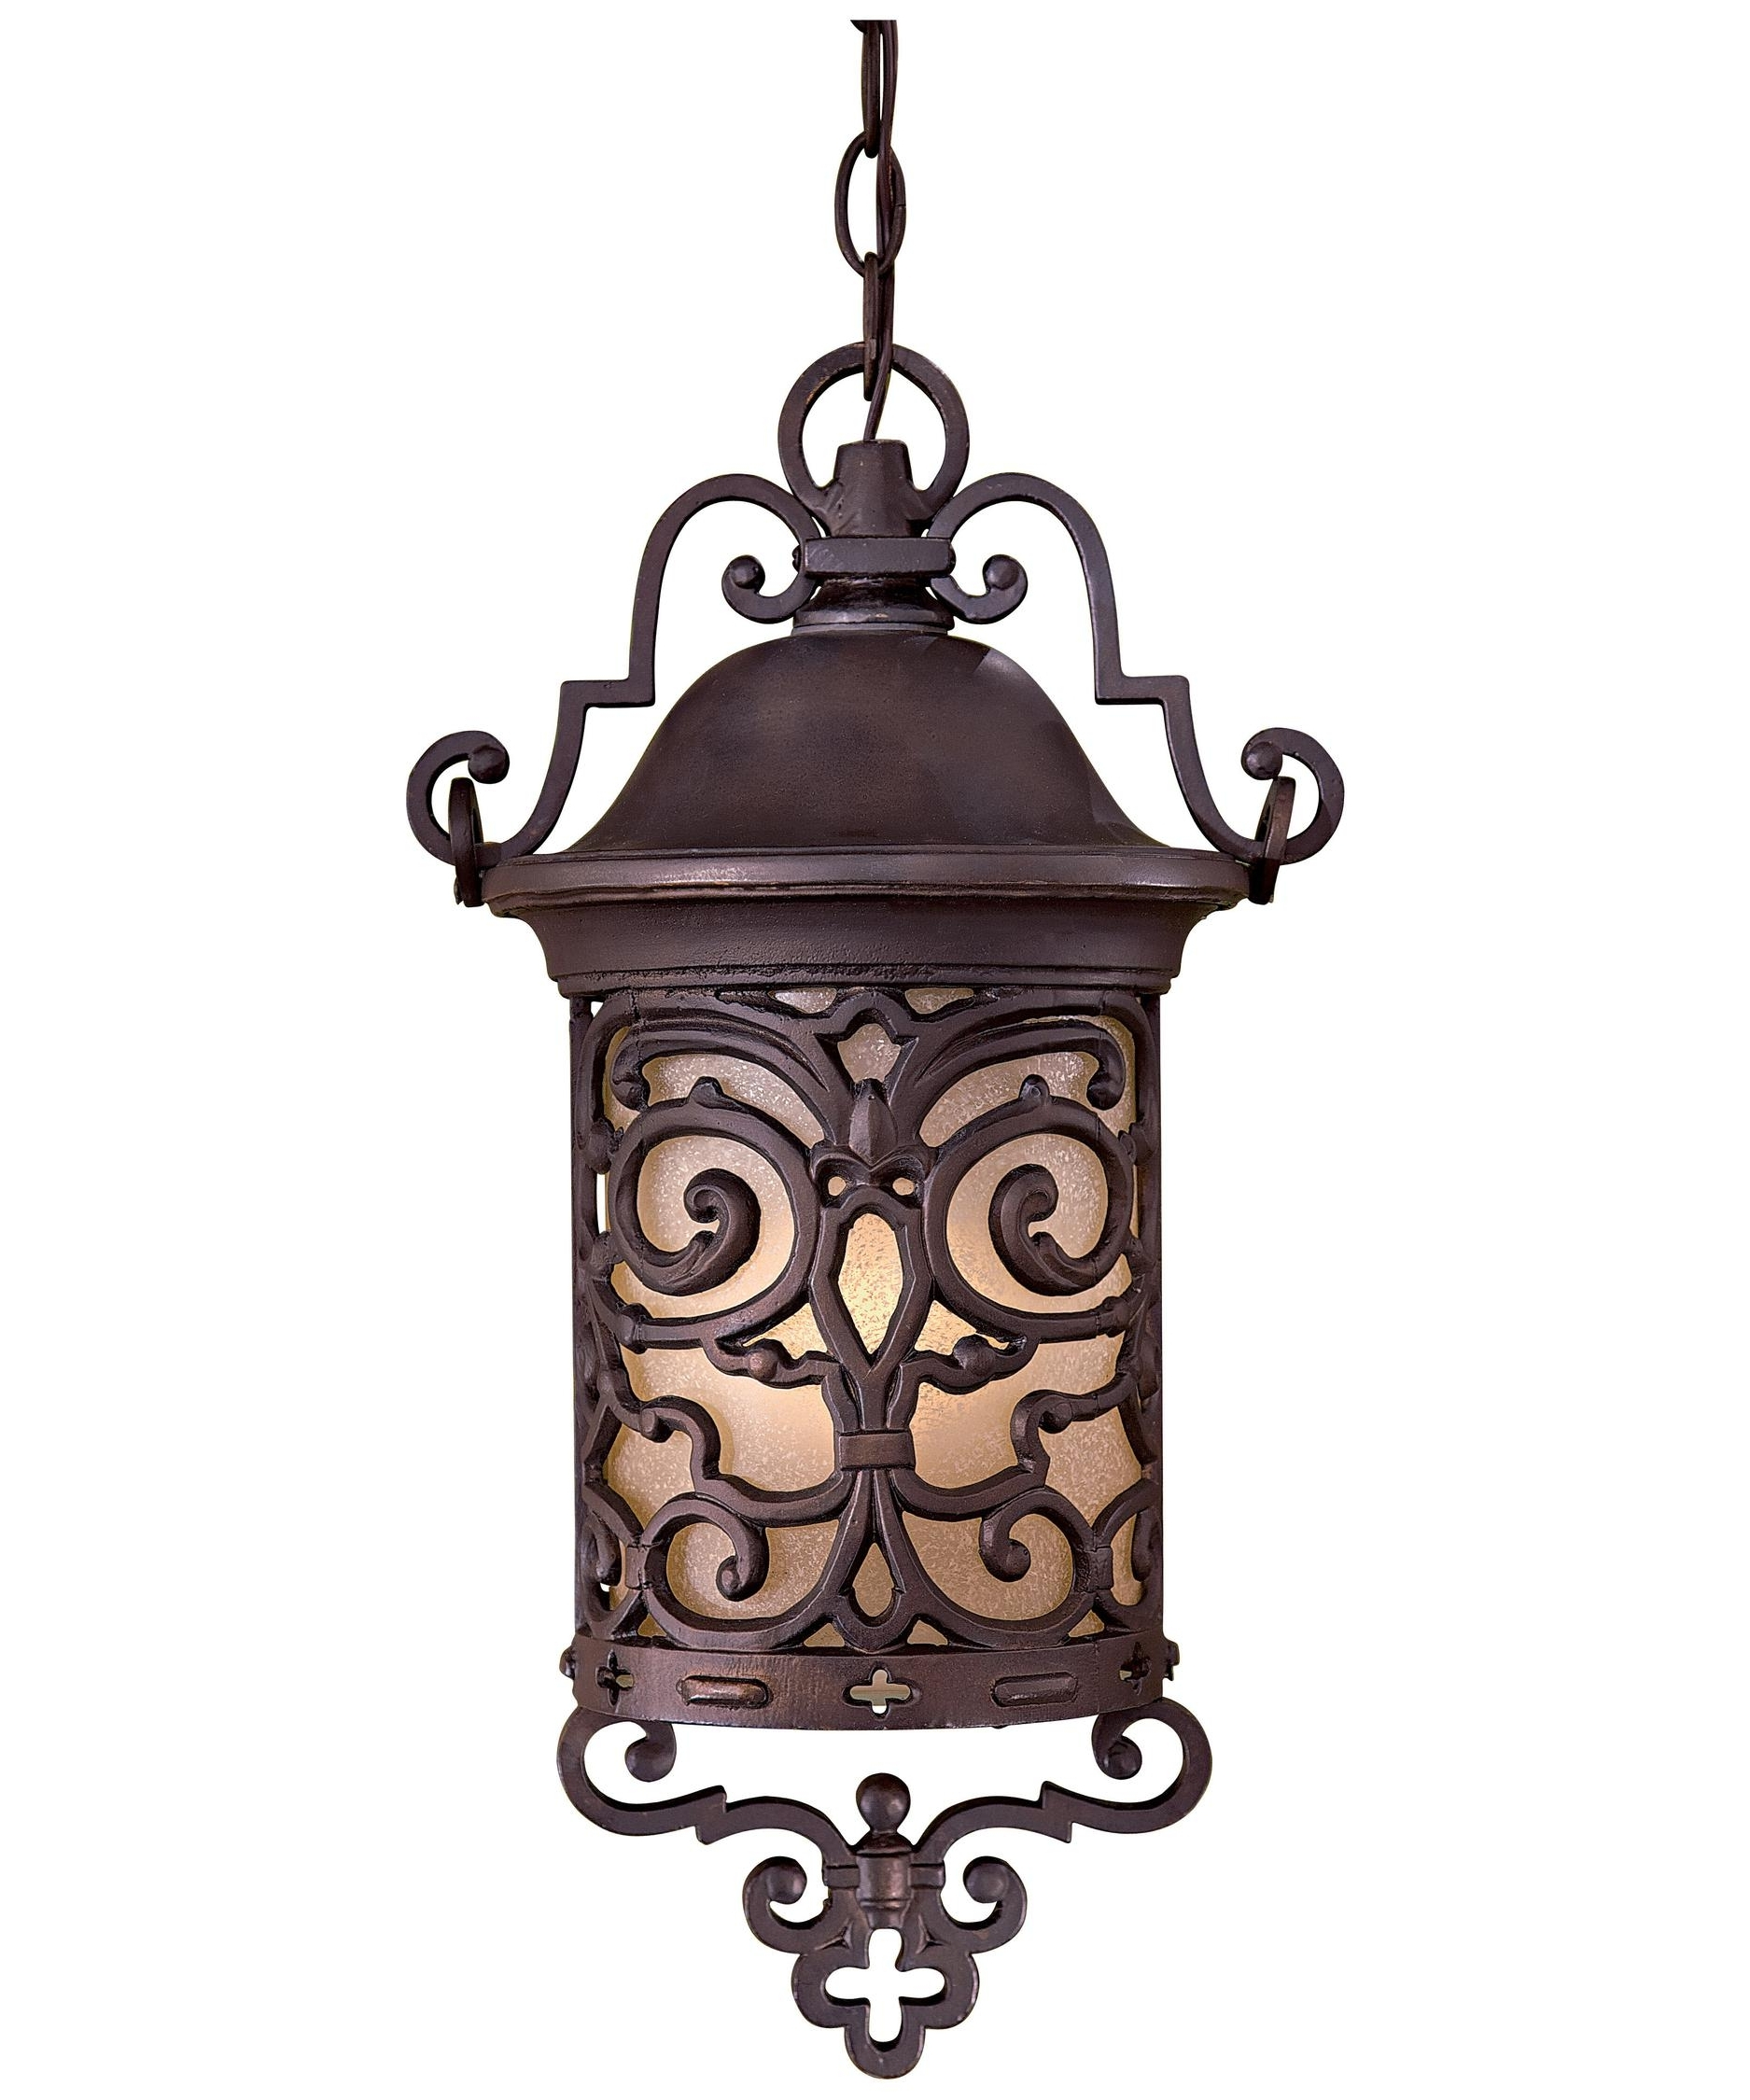 Minka Lavery 9194 Chelsea Road 11 Inch Wide 1 Light Outdoor Hanging Throughout Favorite Outdoor Iron Hanging Lights (View 10 of 20)